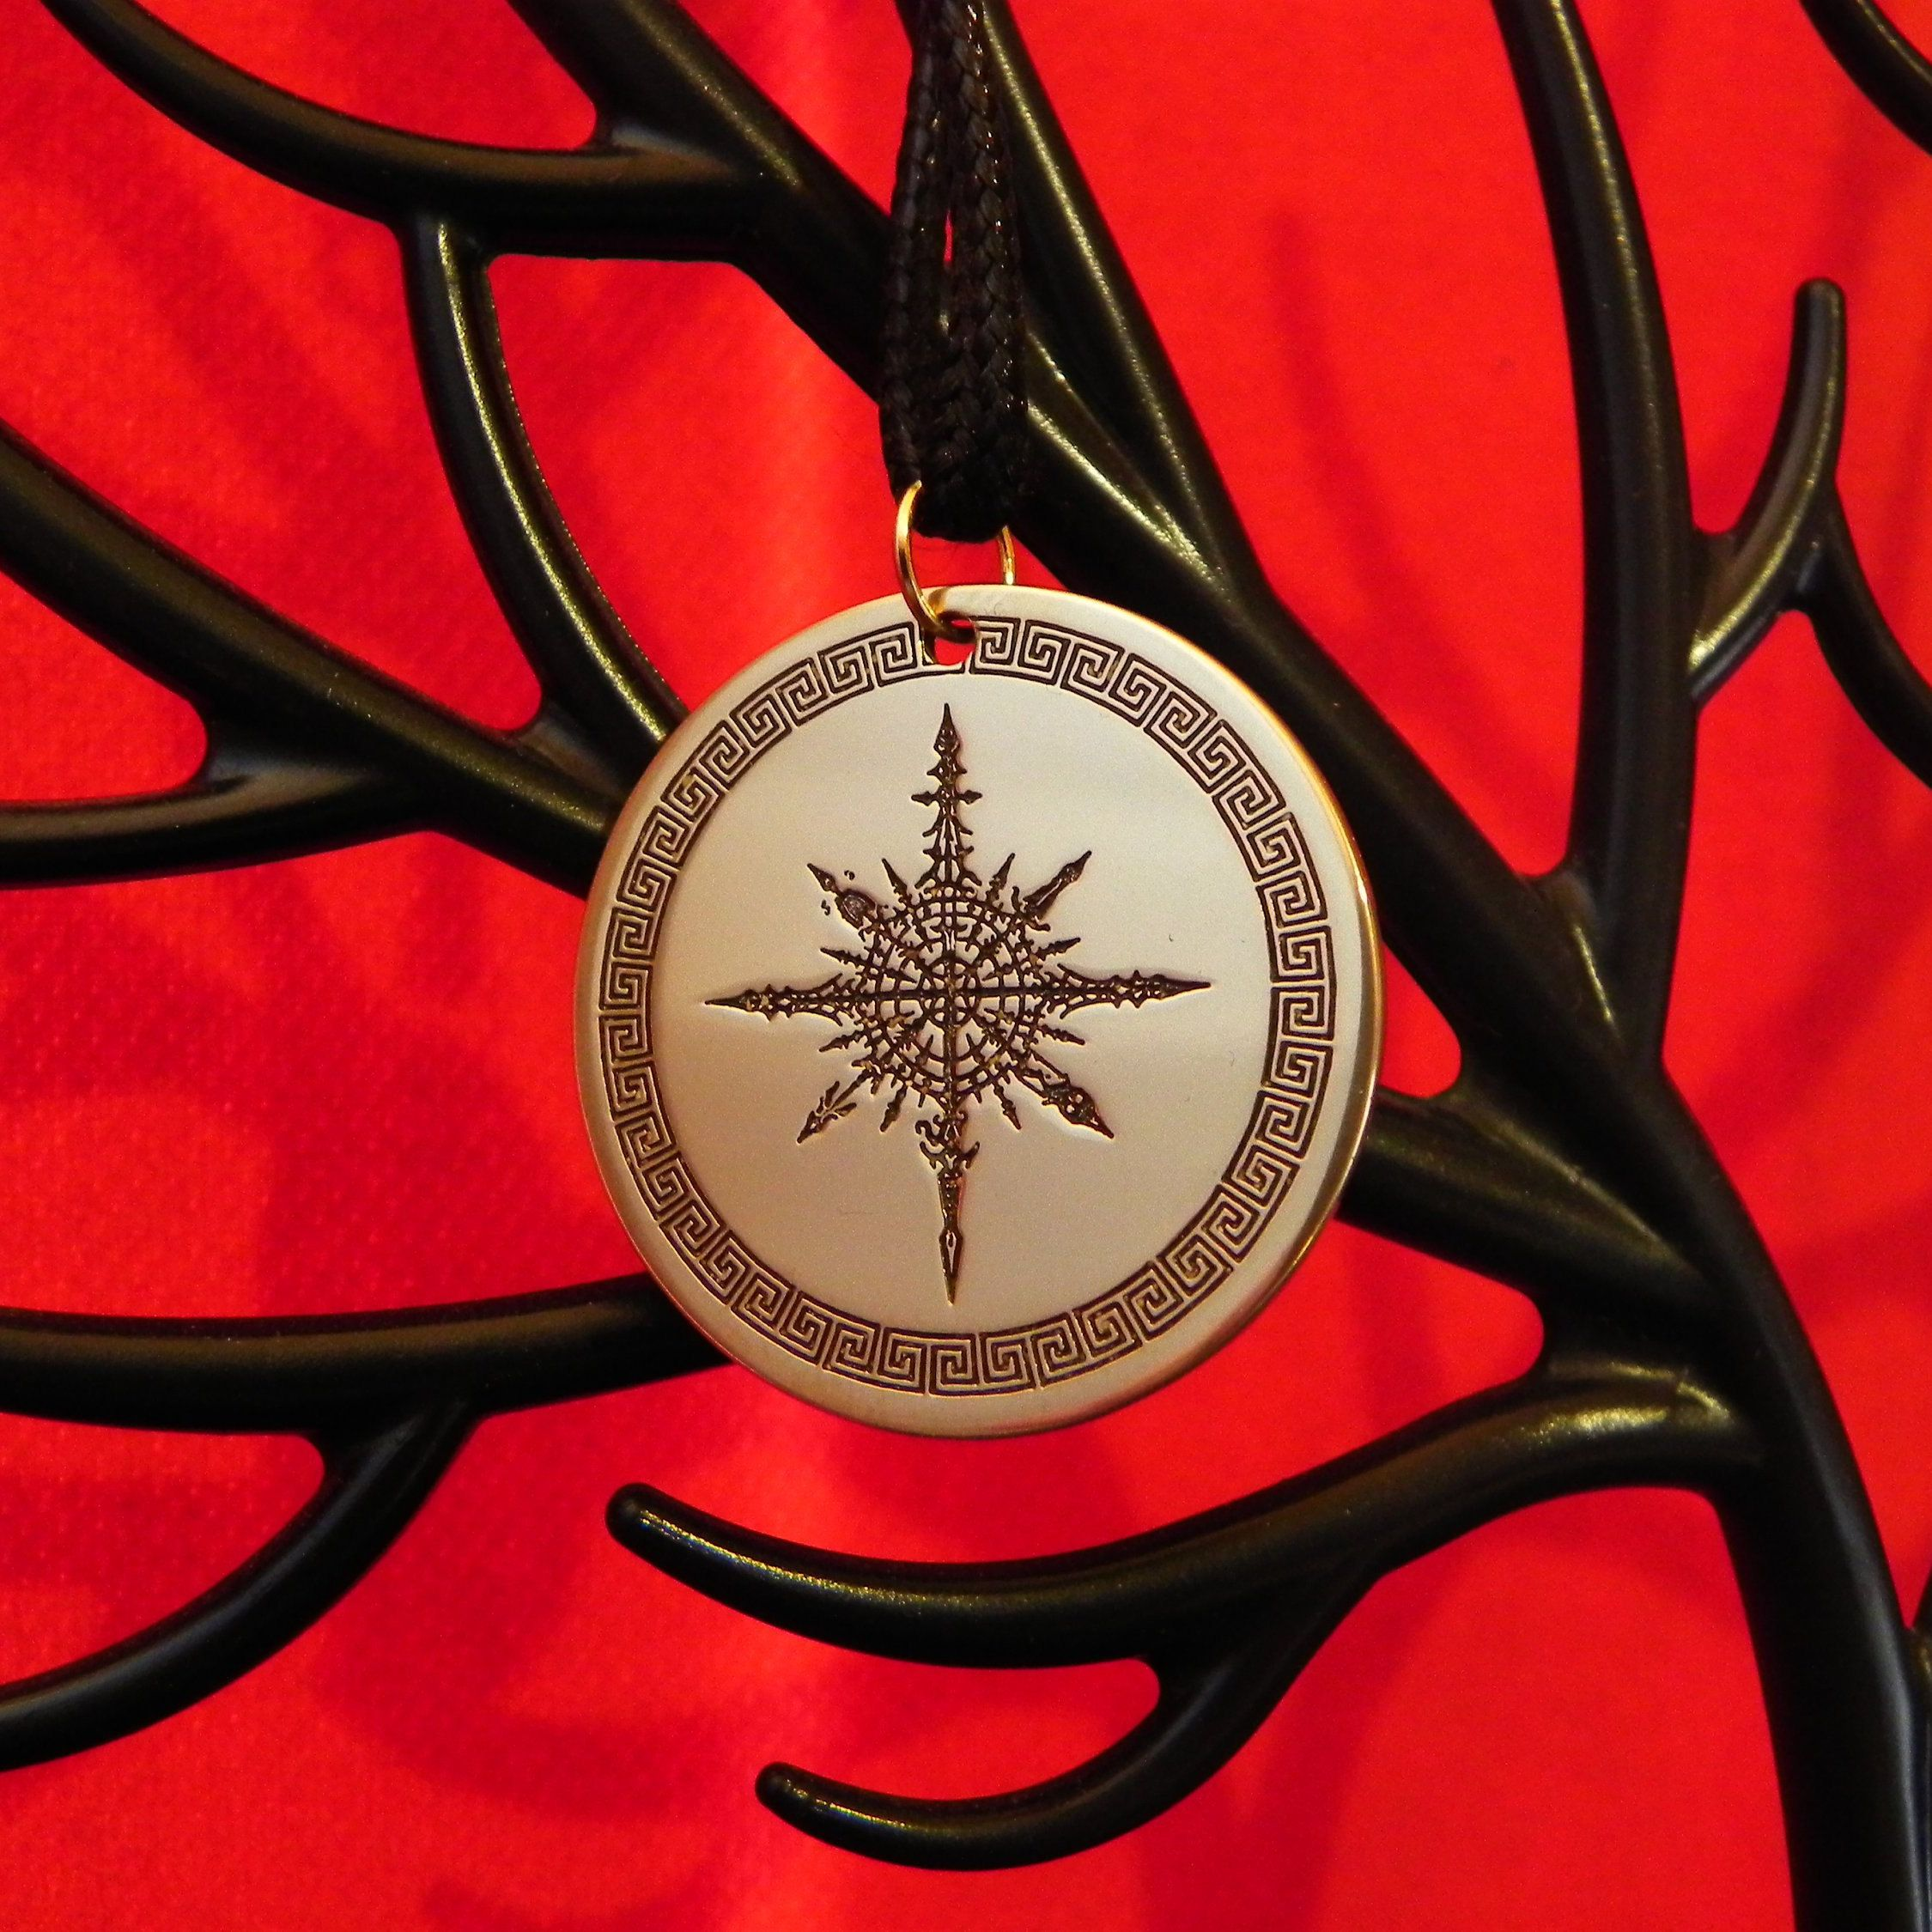 Chaos star symbol of the chaos of the first god of